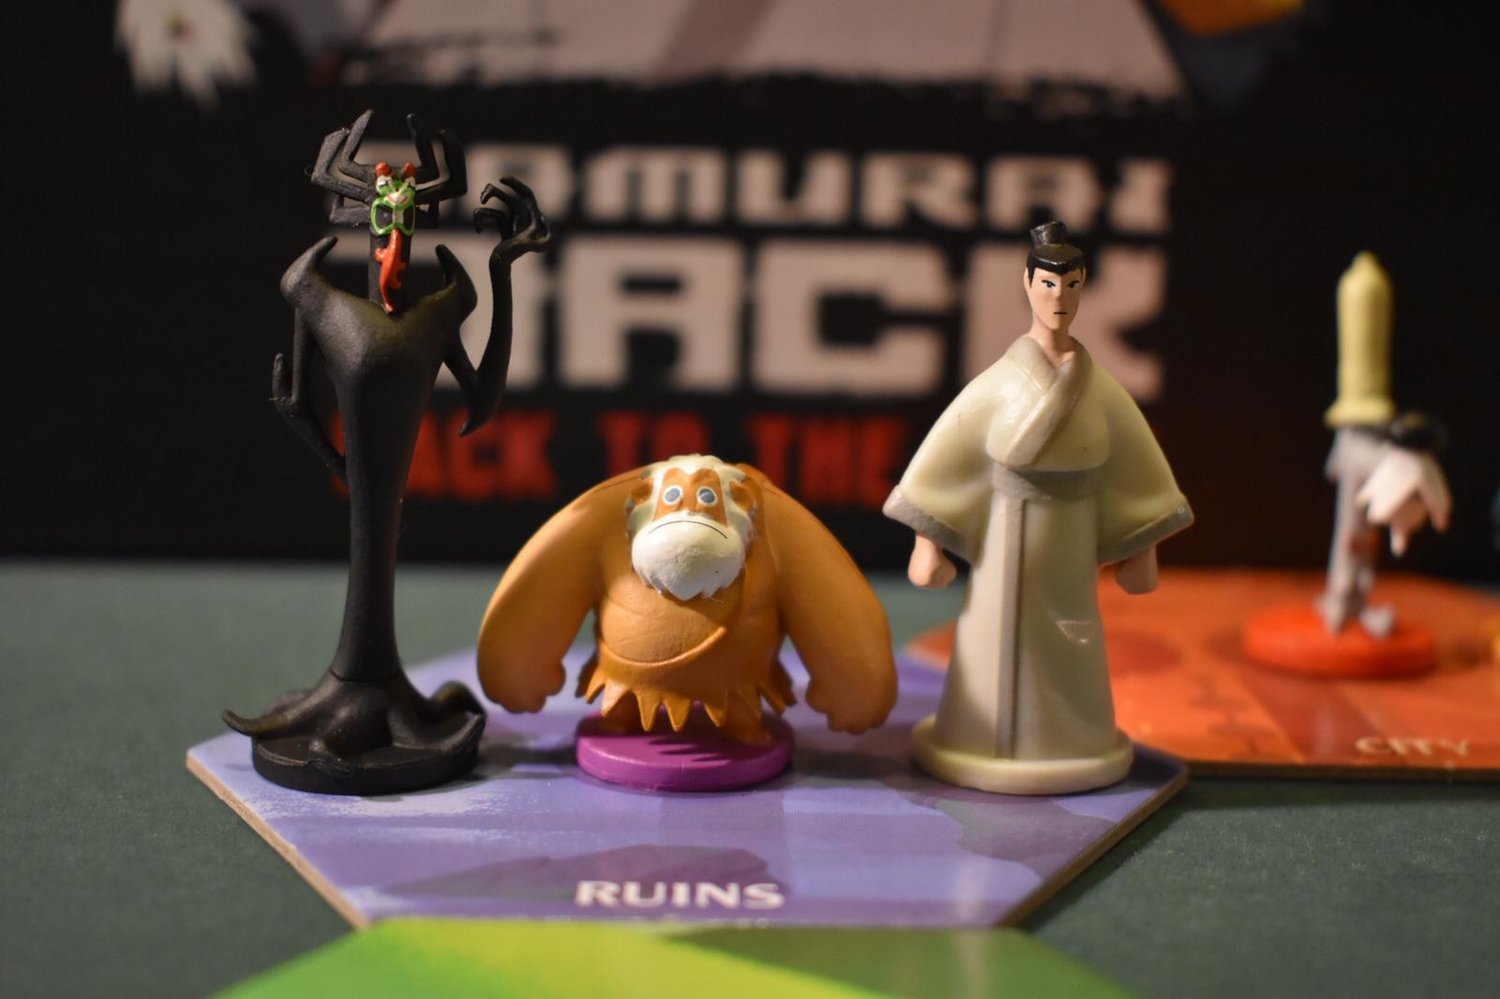 One Board Family Samurai Jack Back To The Past Review Punchboard Media